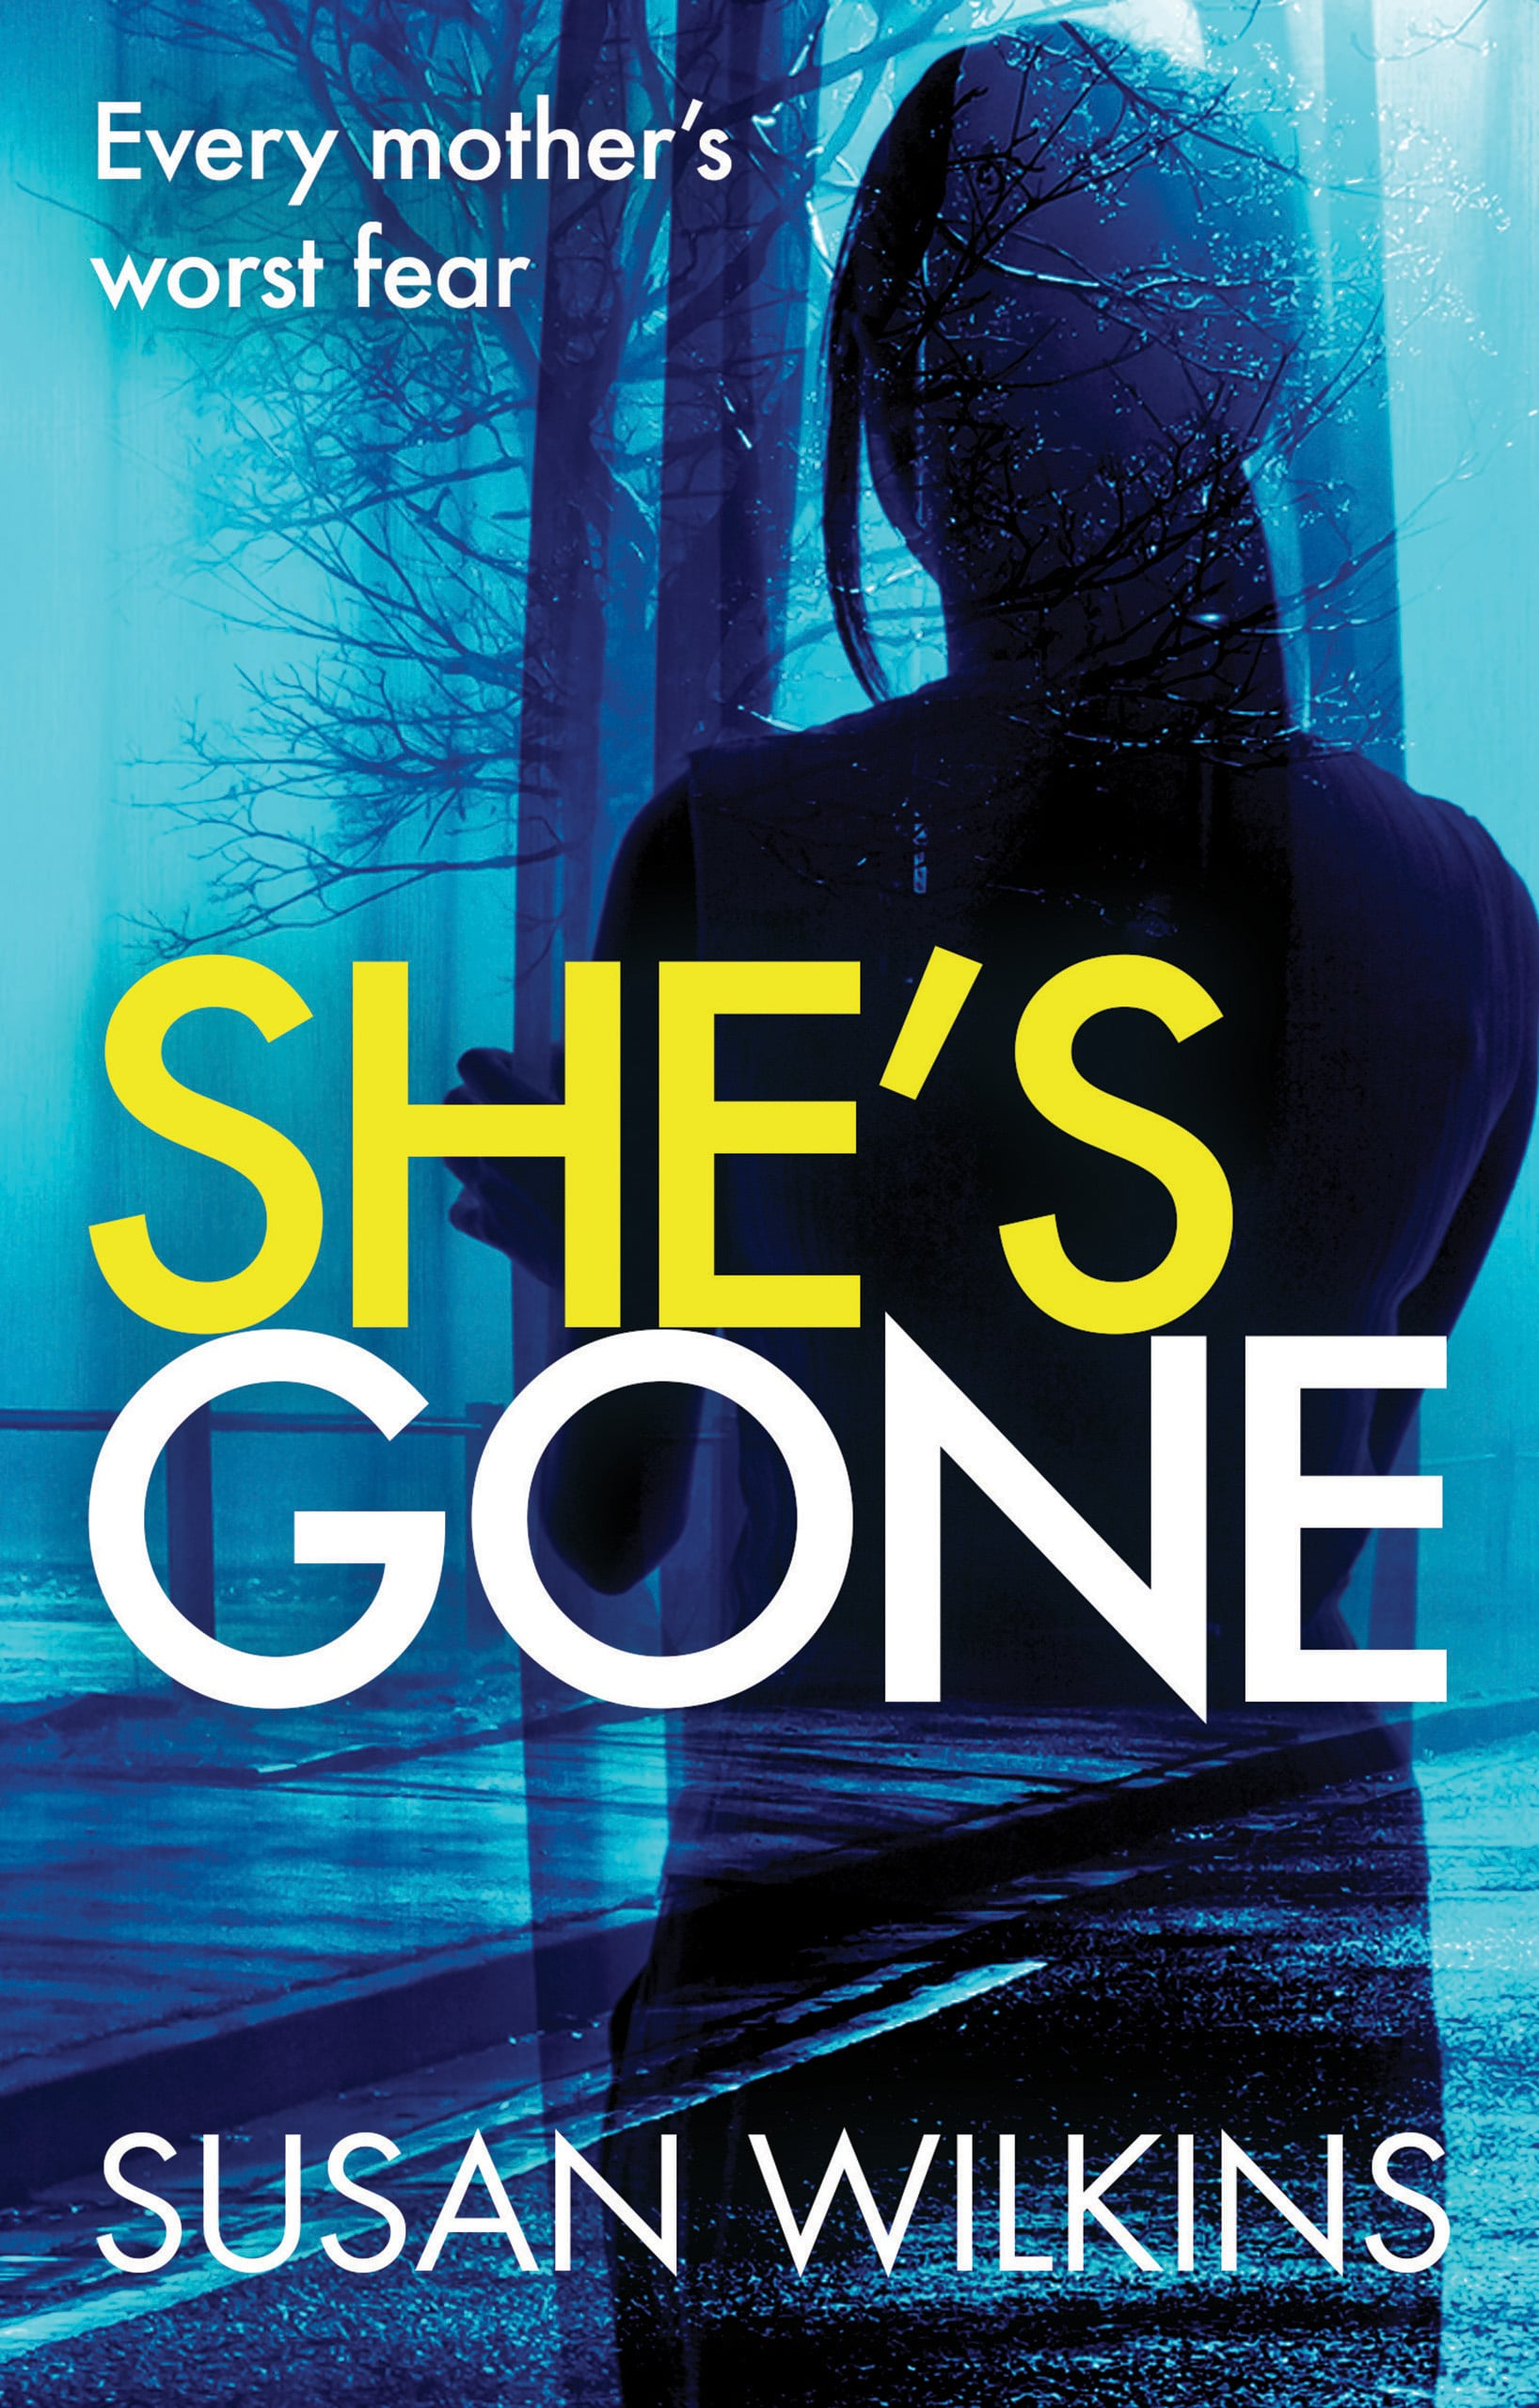 Image of book cover She's Gone by Susan Wilkins. A lone female figure standing at a large window looking out onto a dark street.